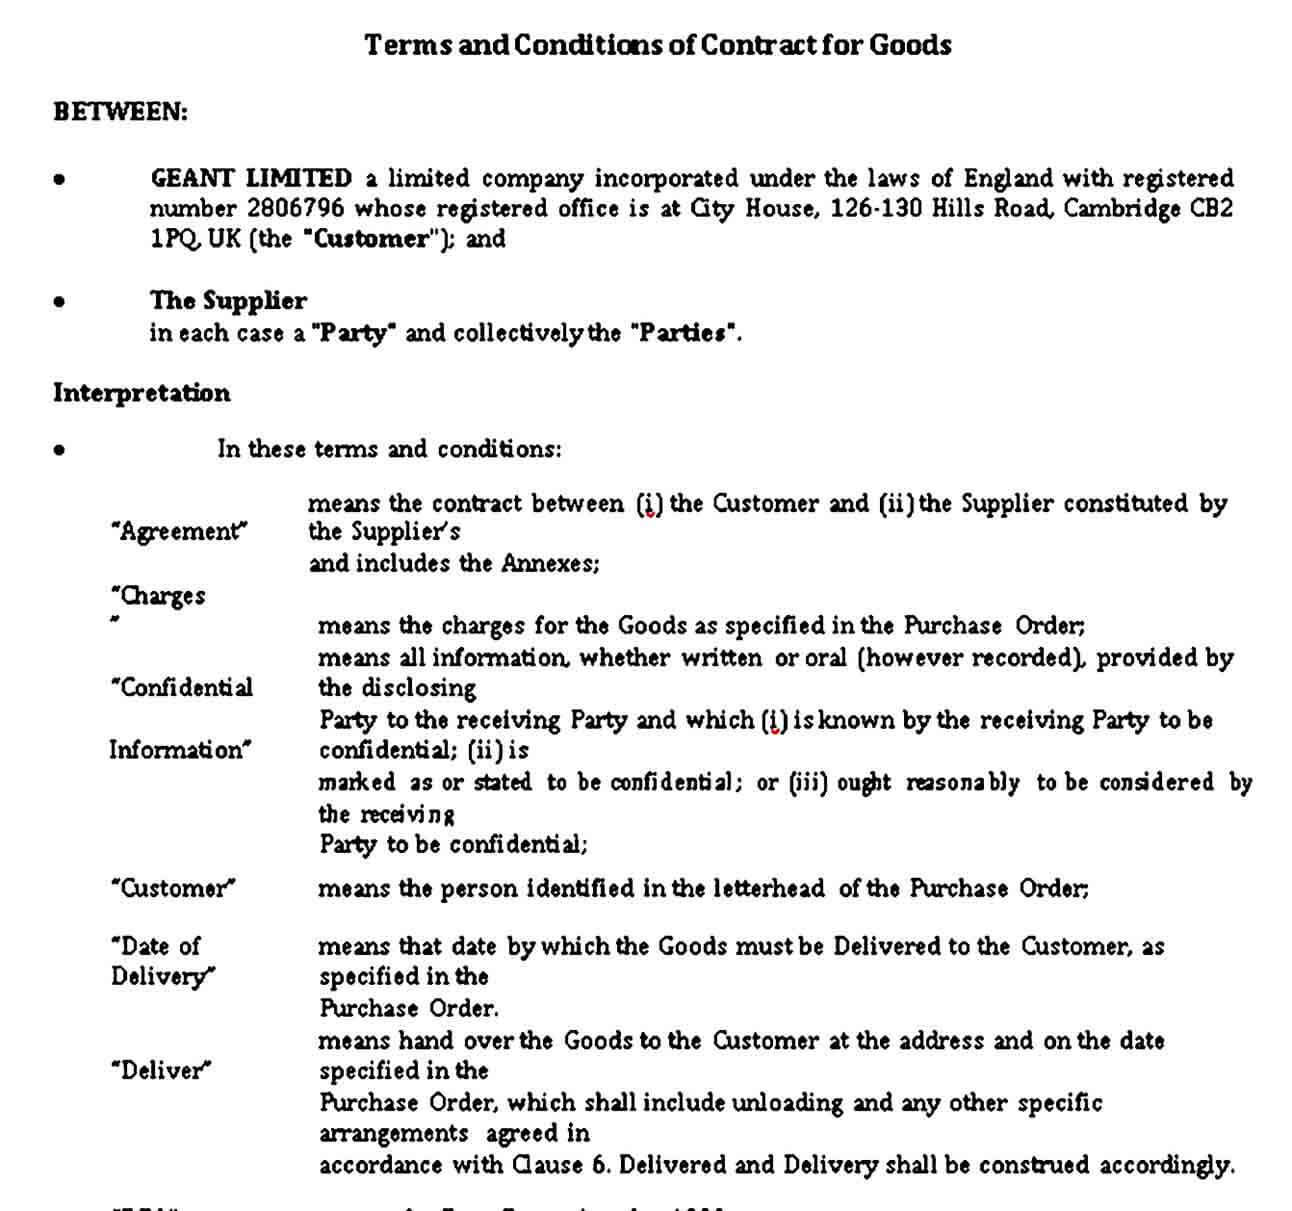 Terms and Conditions for the Goods